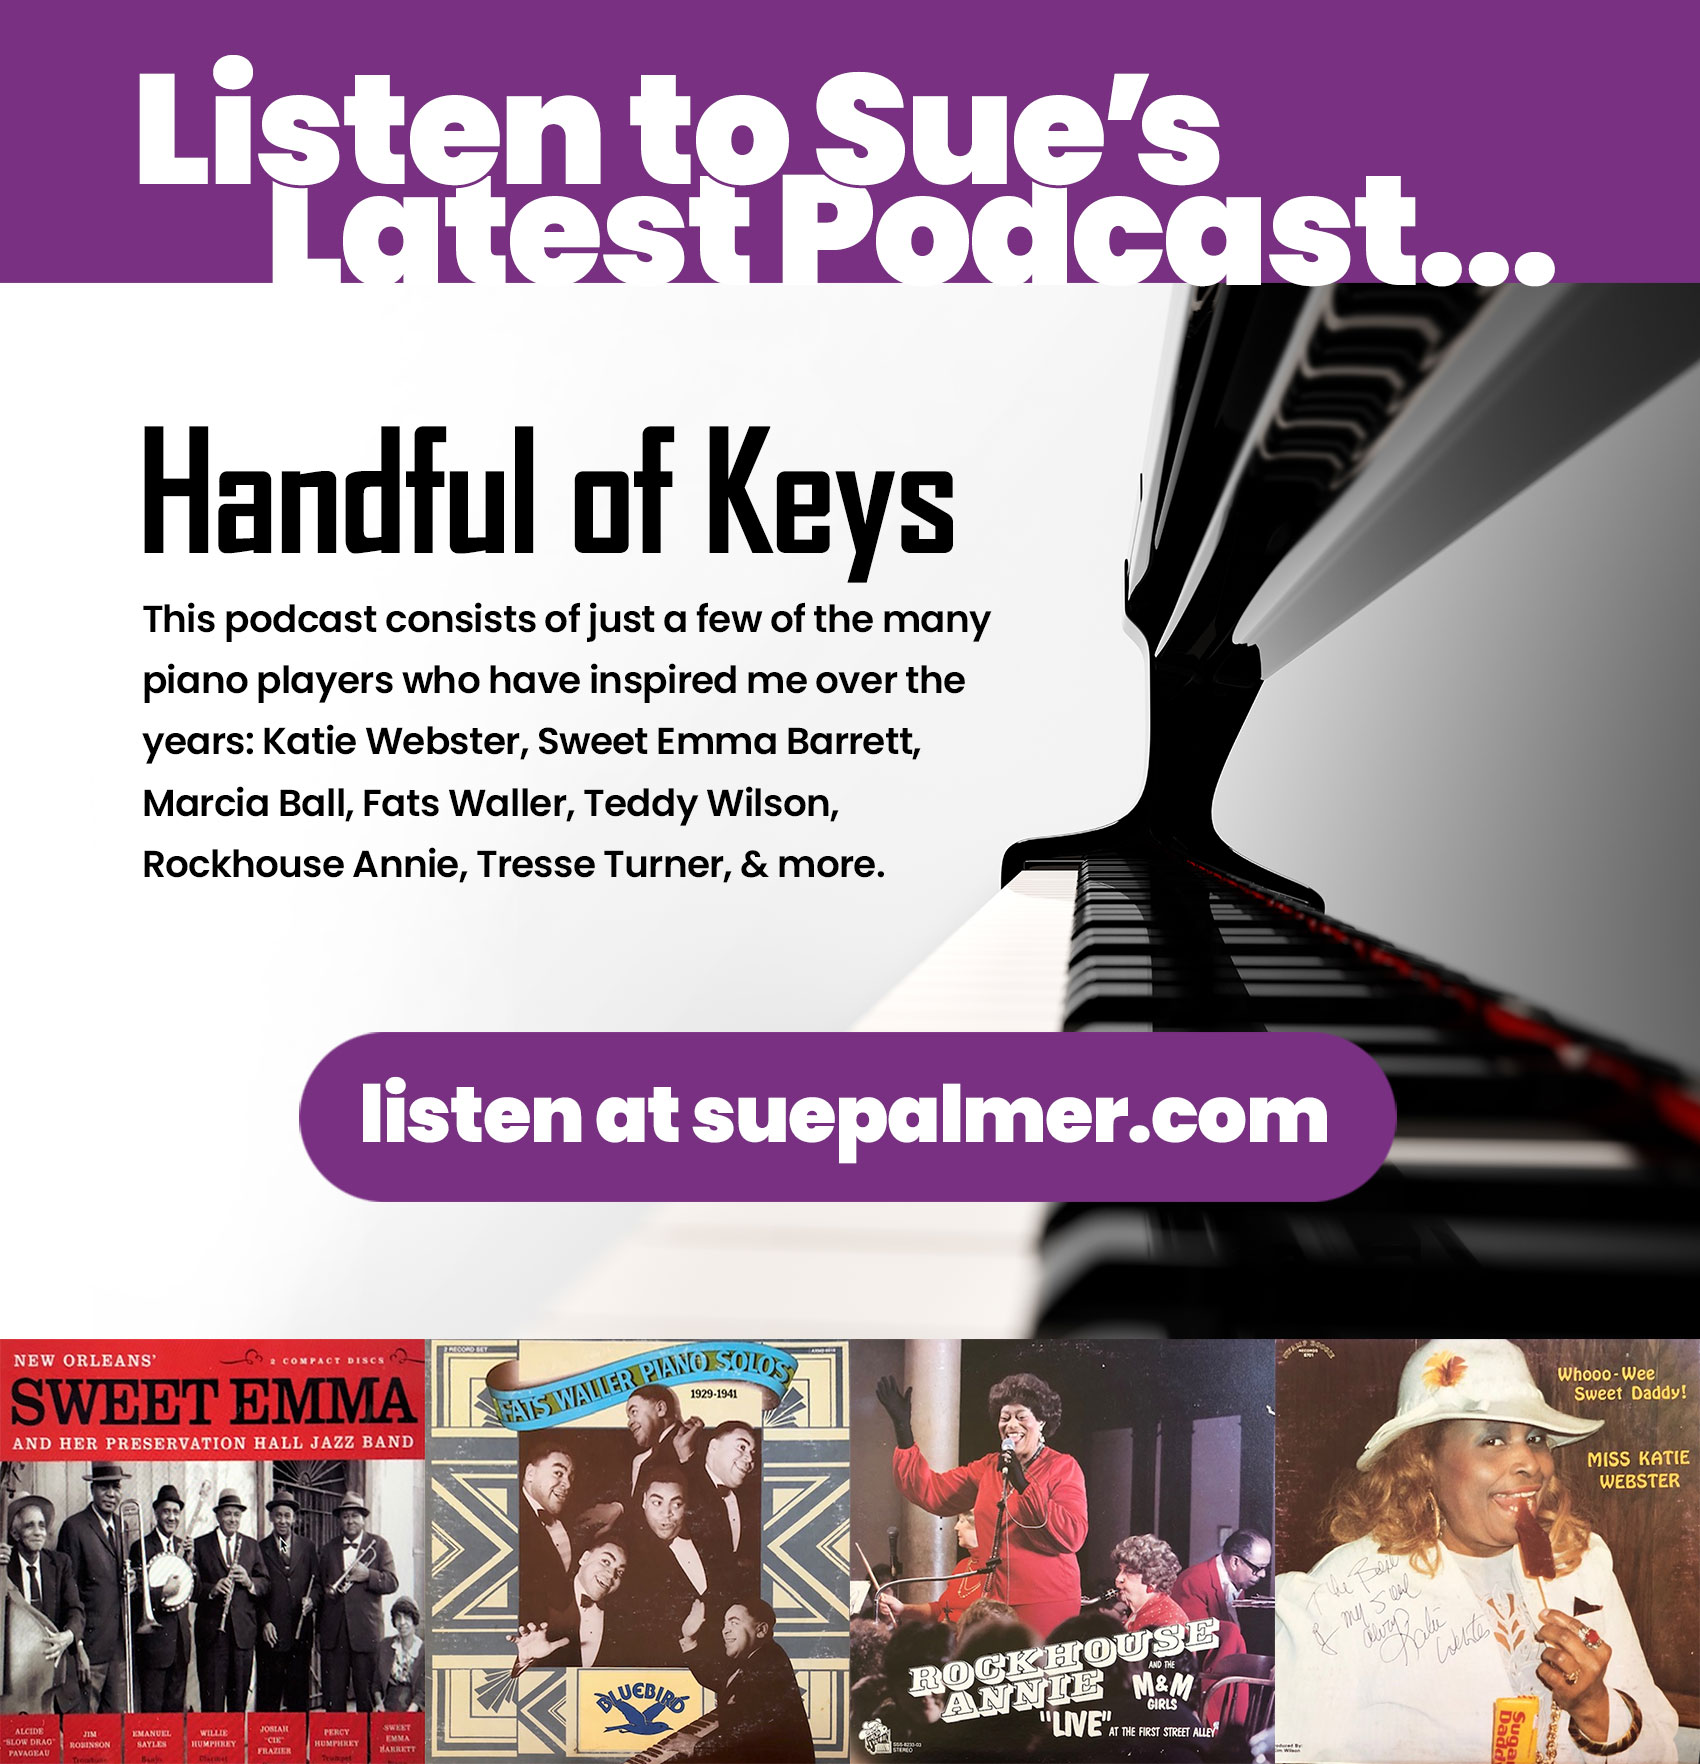 Listen to the Handful of Keys Podcast